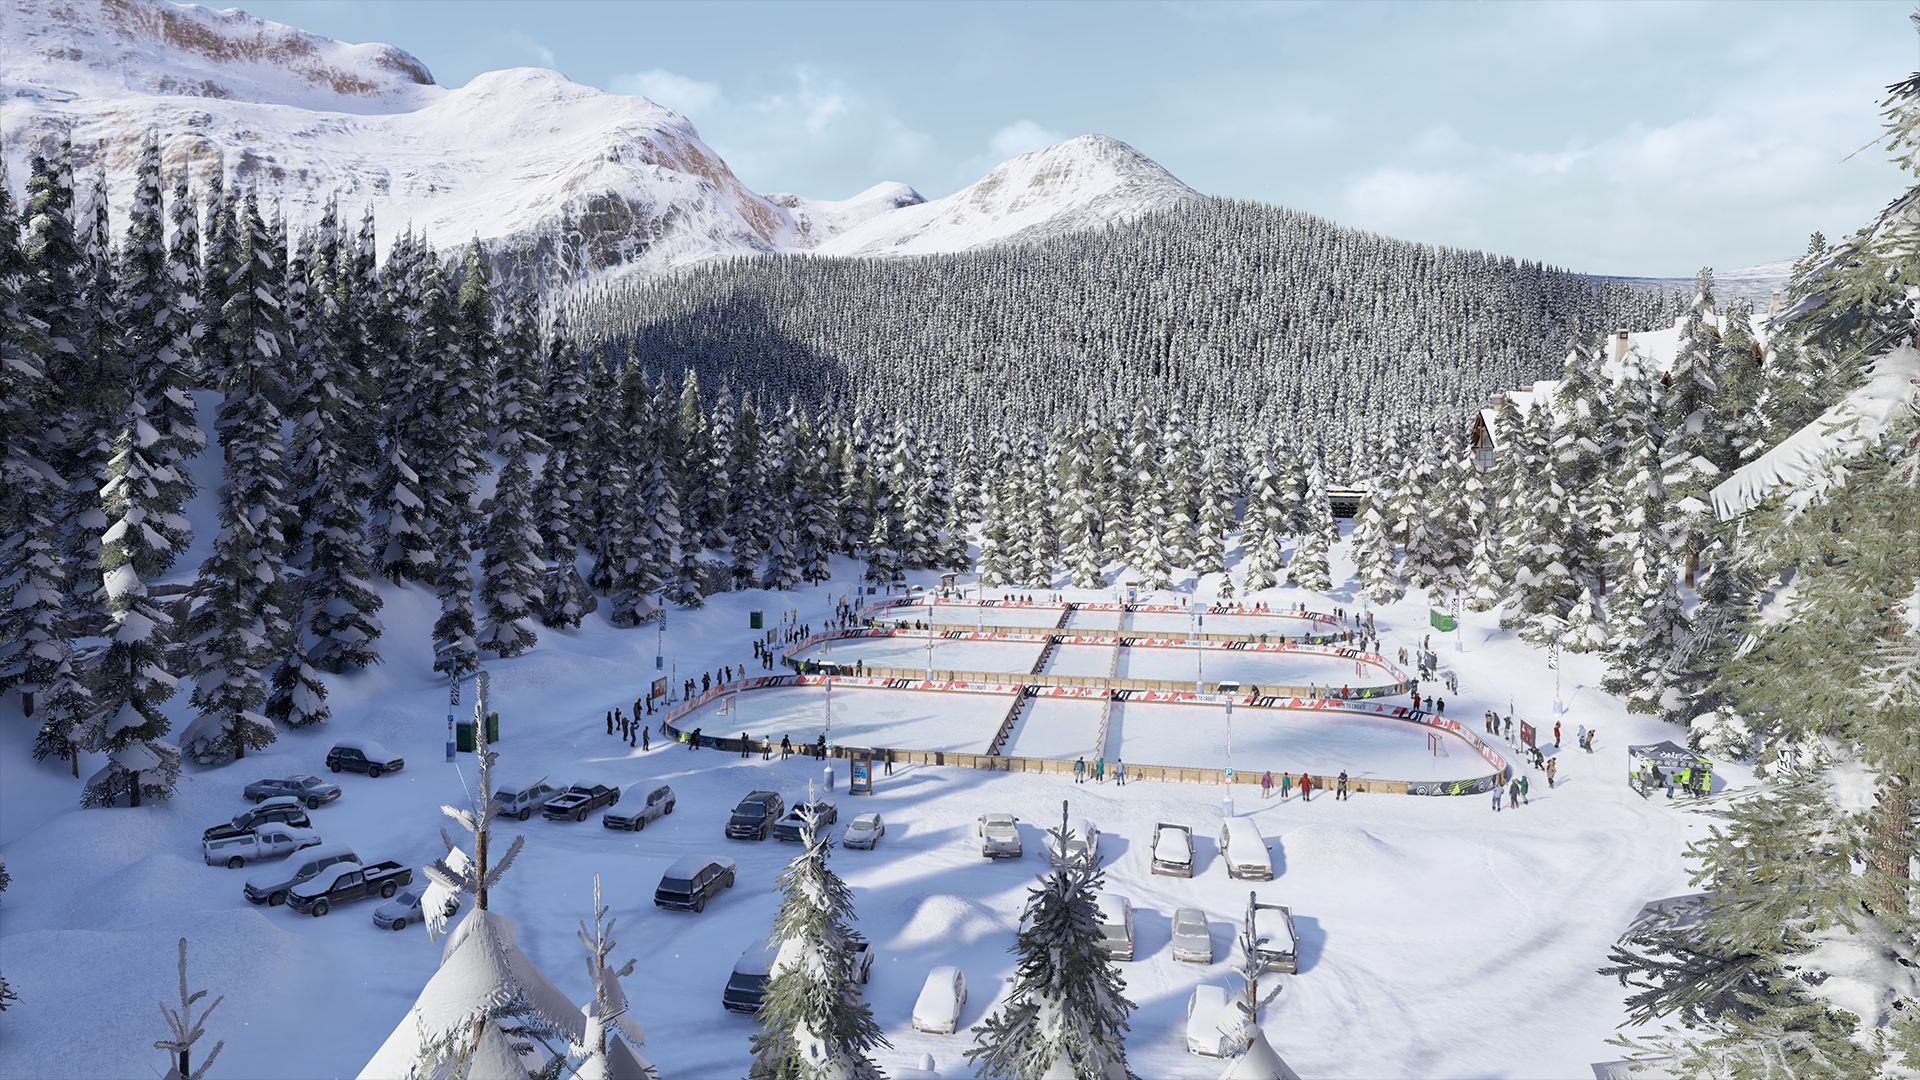 ea sports nhl 19 ones nhl ones lake outdoor rink series video game ea nhl 20 21 list best top ten top five list outdoor rink best places to skate outside pond hockey best odr hockey outdoor hockey rinks skating ice skating hockey